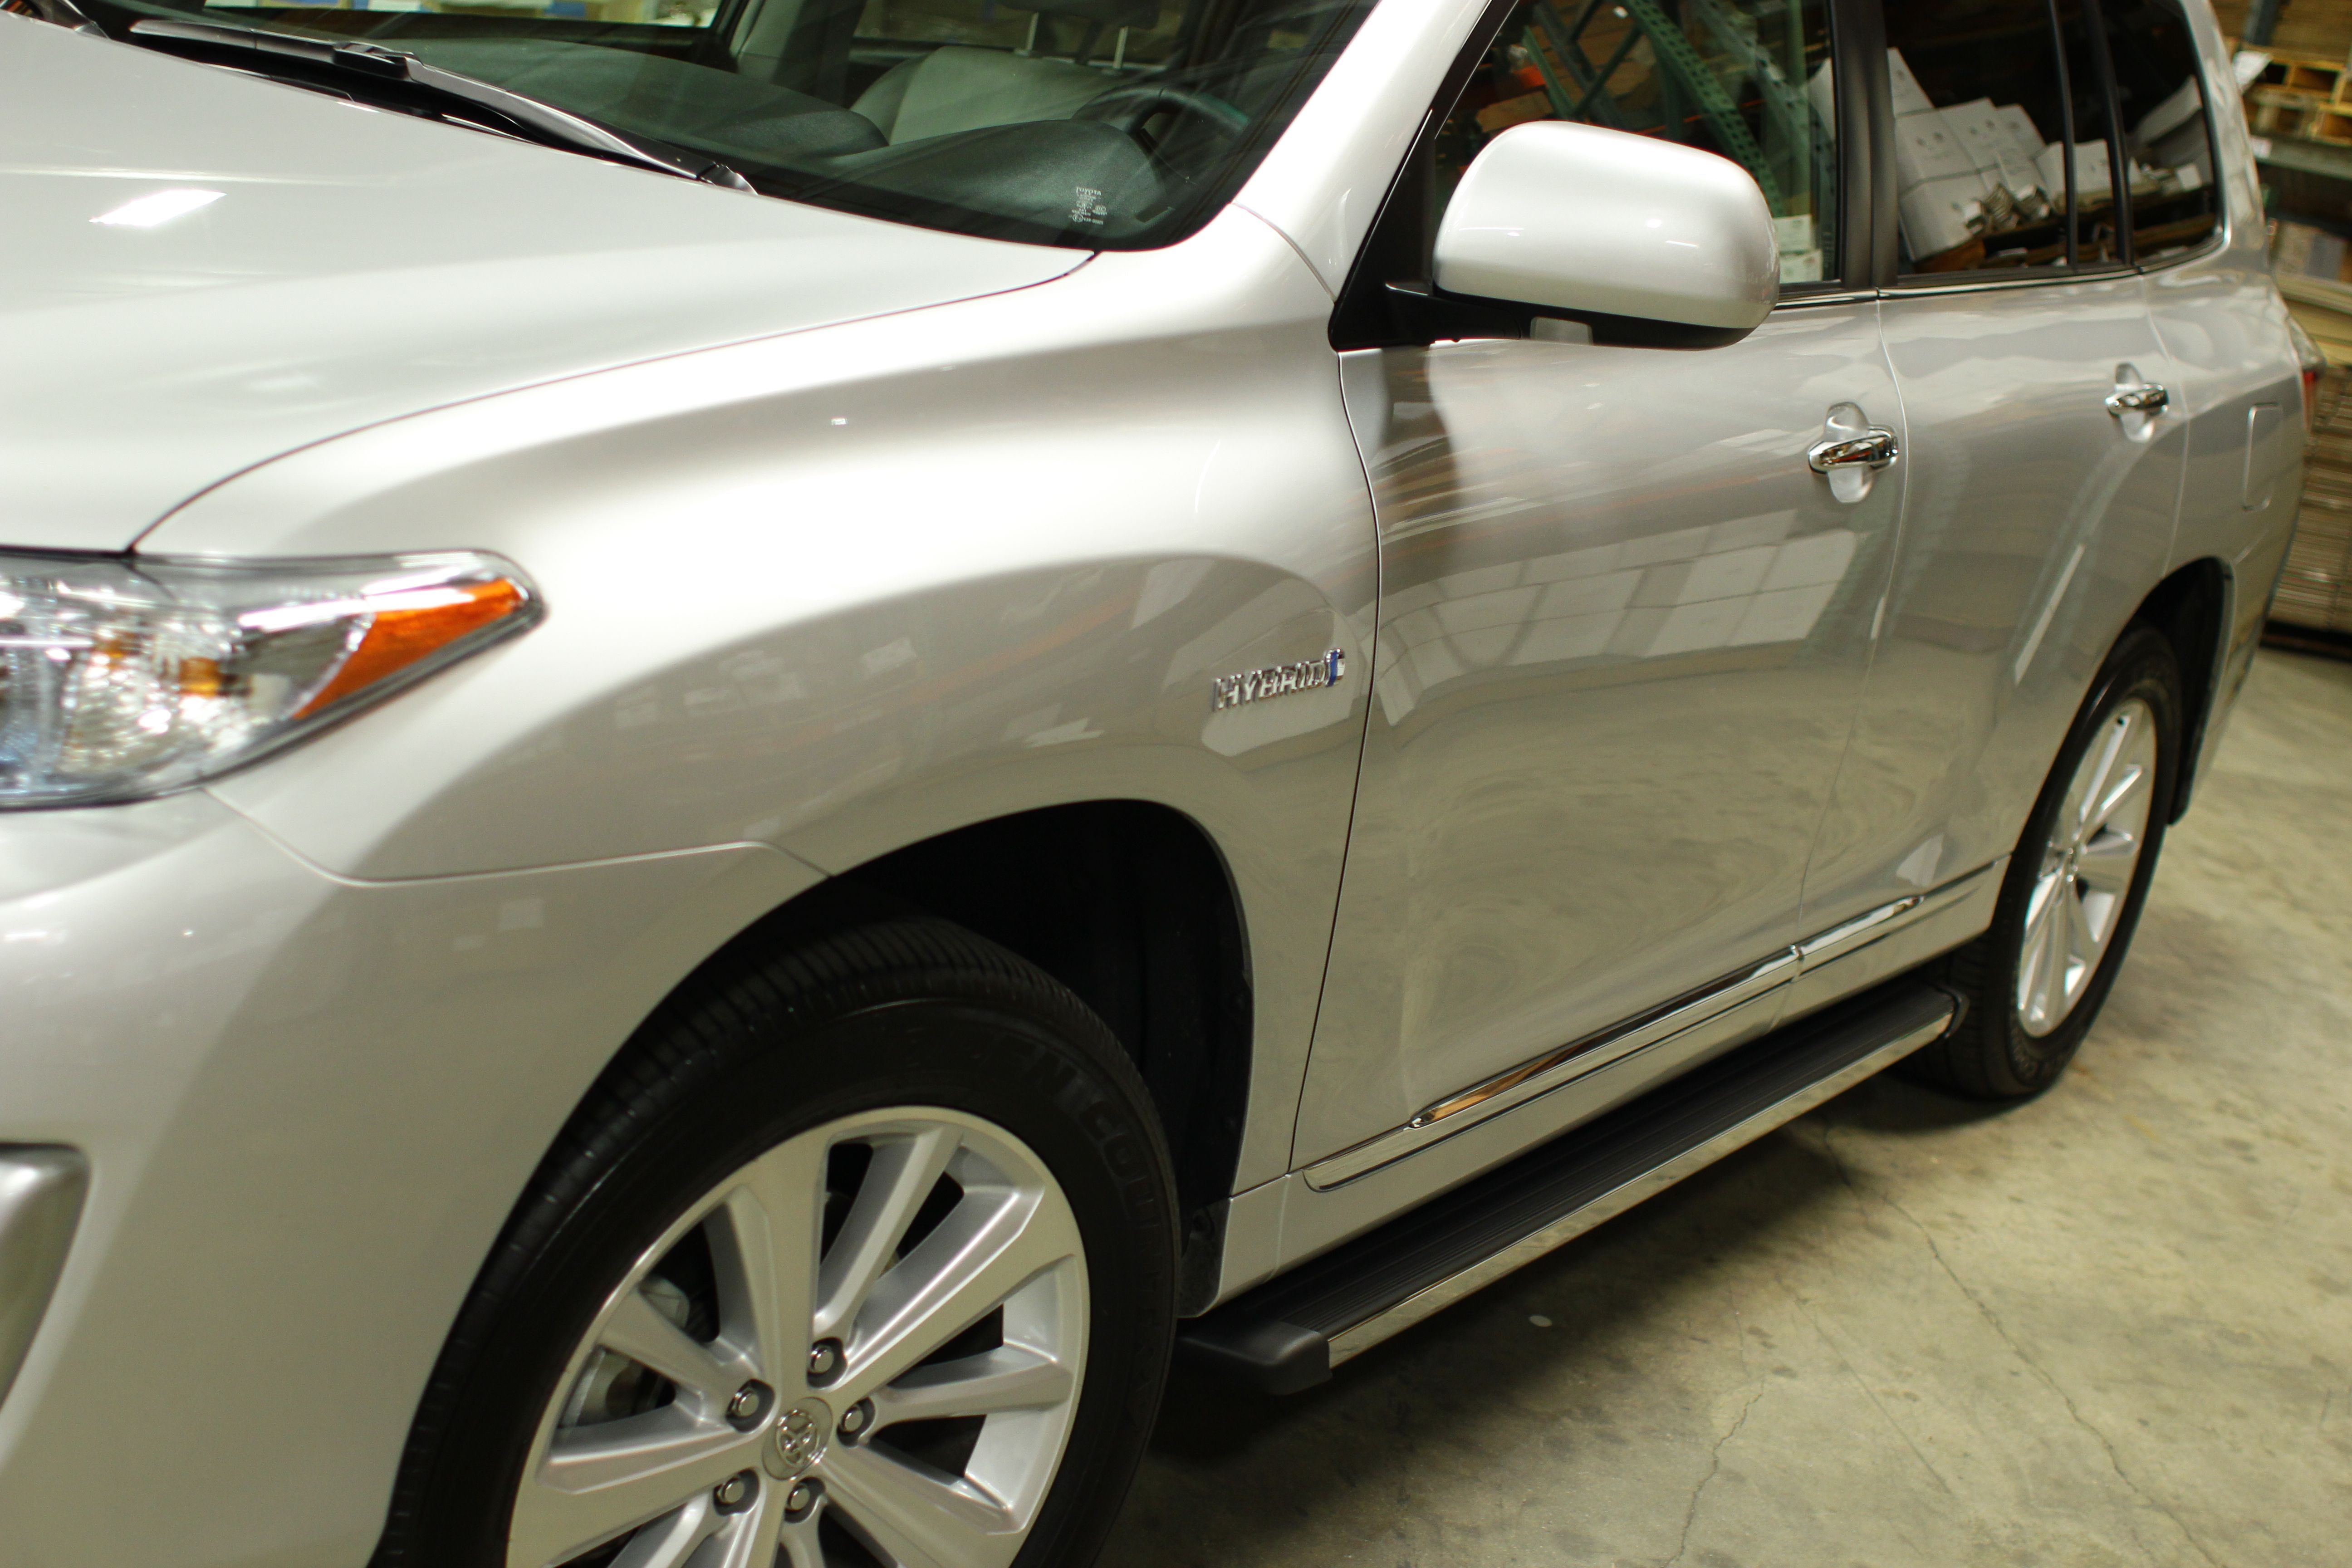 Ats Design S Matrix Series Running Boards On This 2012 Toyota